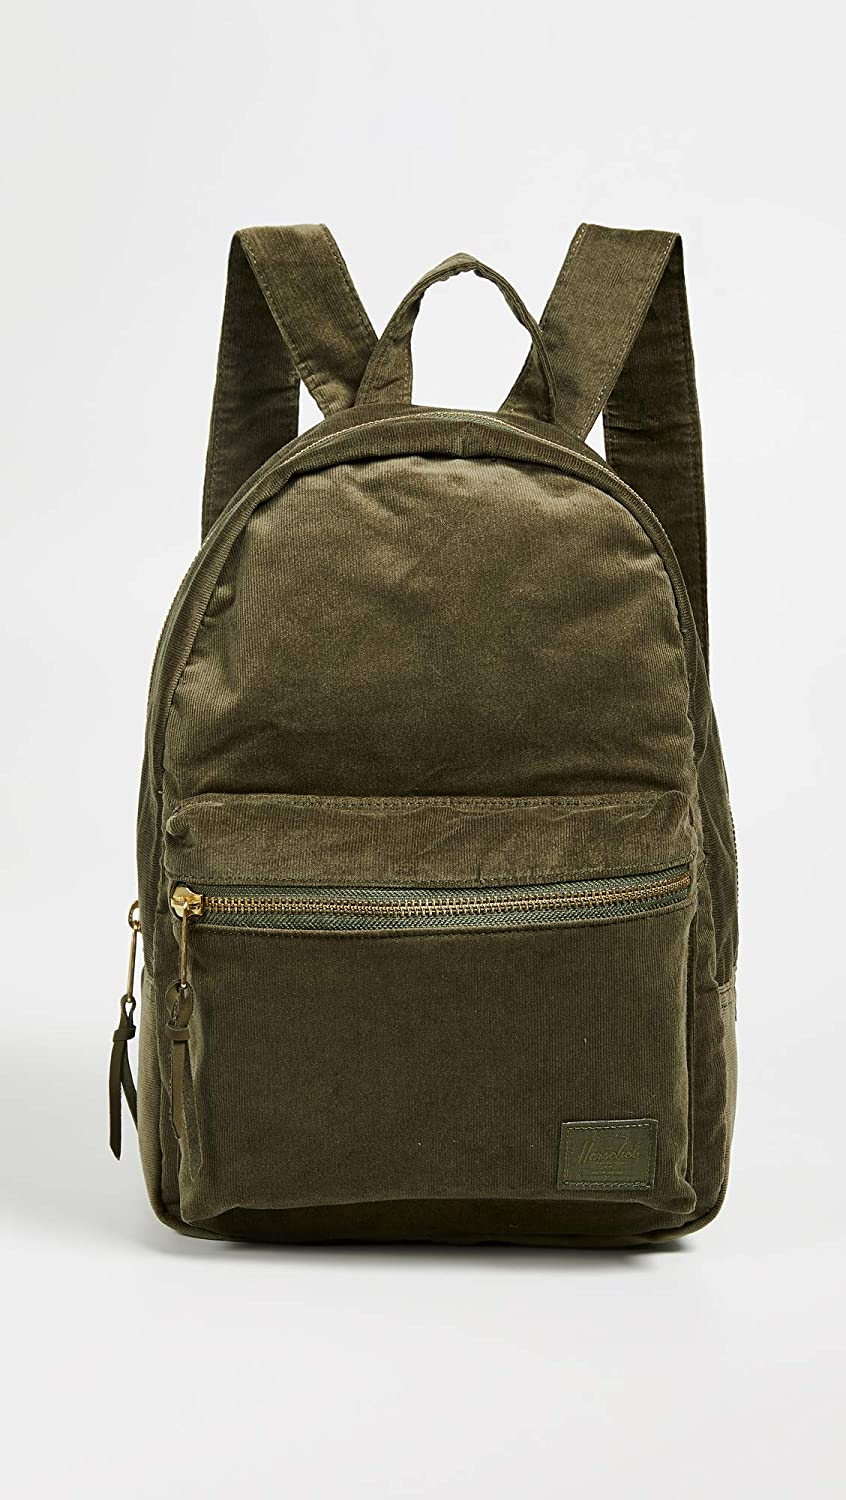 a8ebe7169d8 Women s Grove X Small Corduroy Backpack